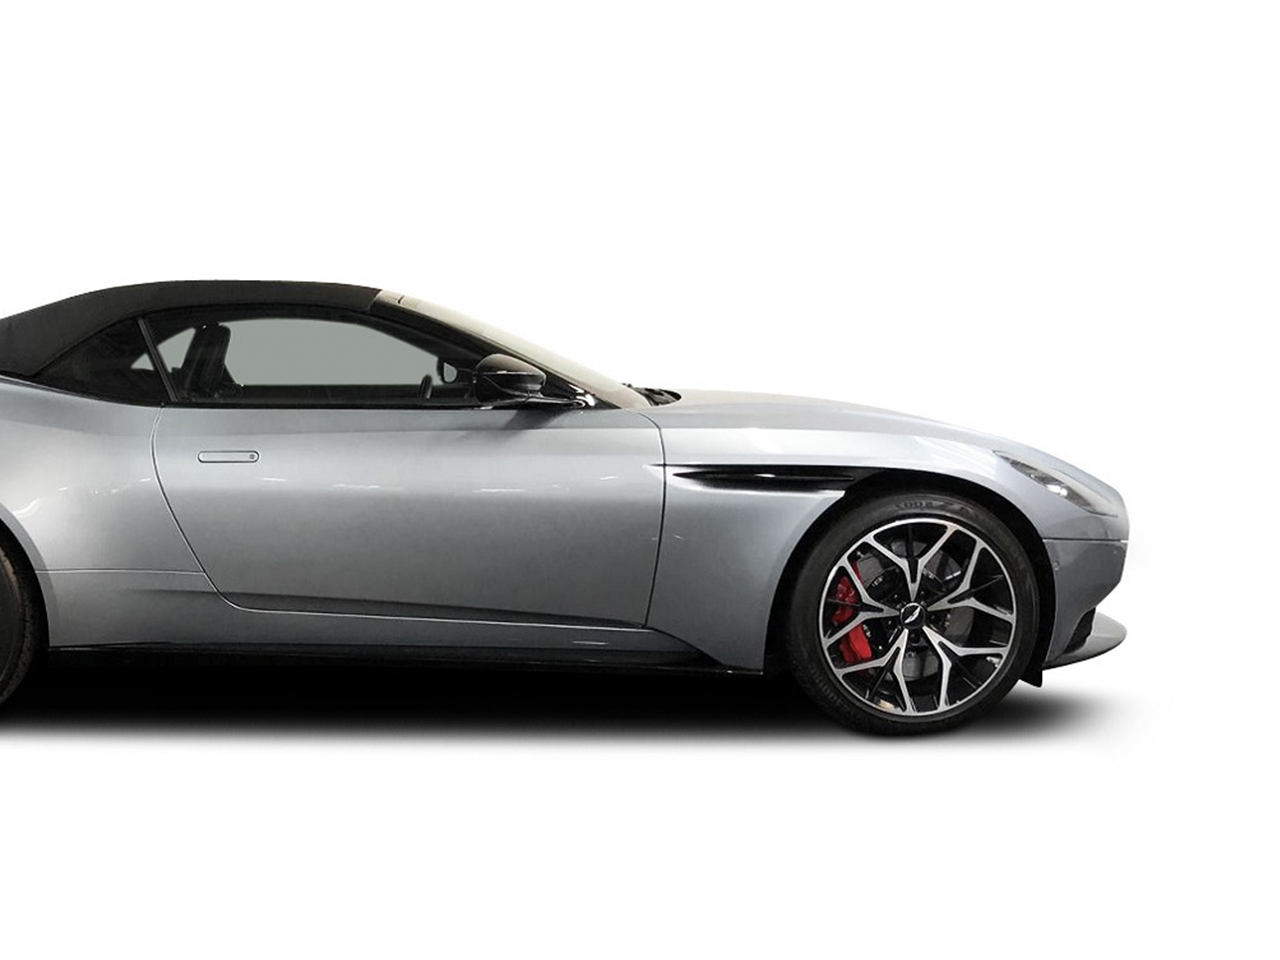 Aston Martin DB11 Volante car for hire